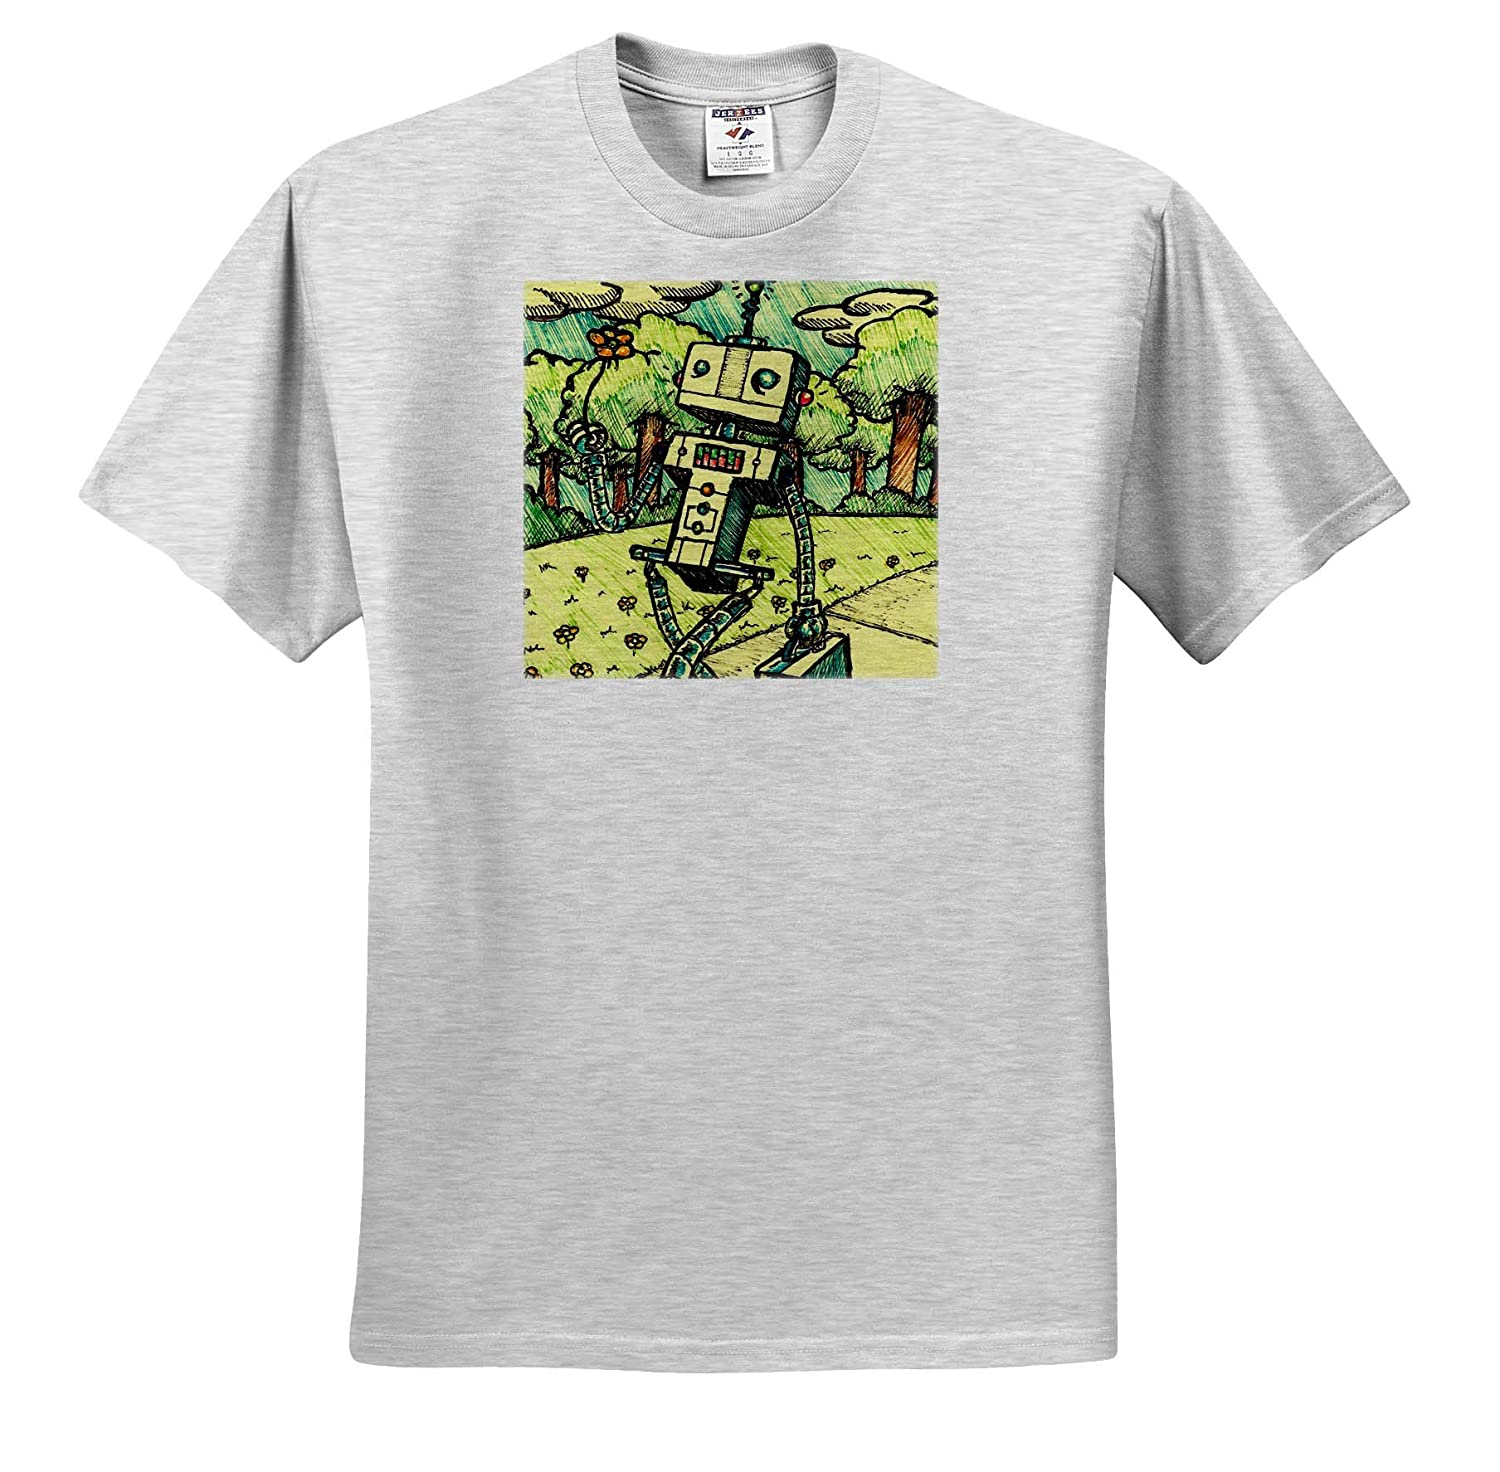 A Robot Holds a Flower While Walking Through The Park 3dRose Travis ECK Art Adult T-Shirt XL ts/_317499